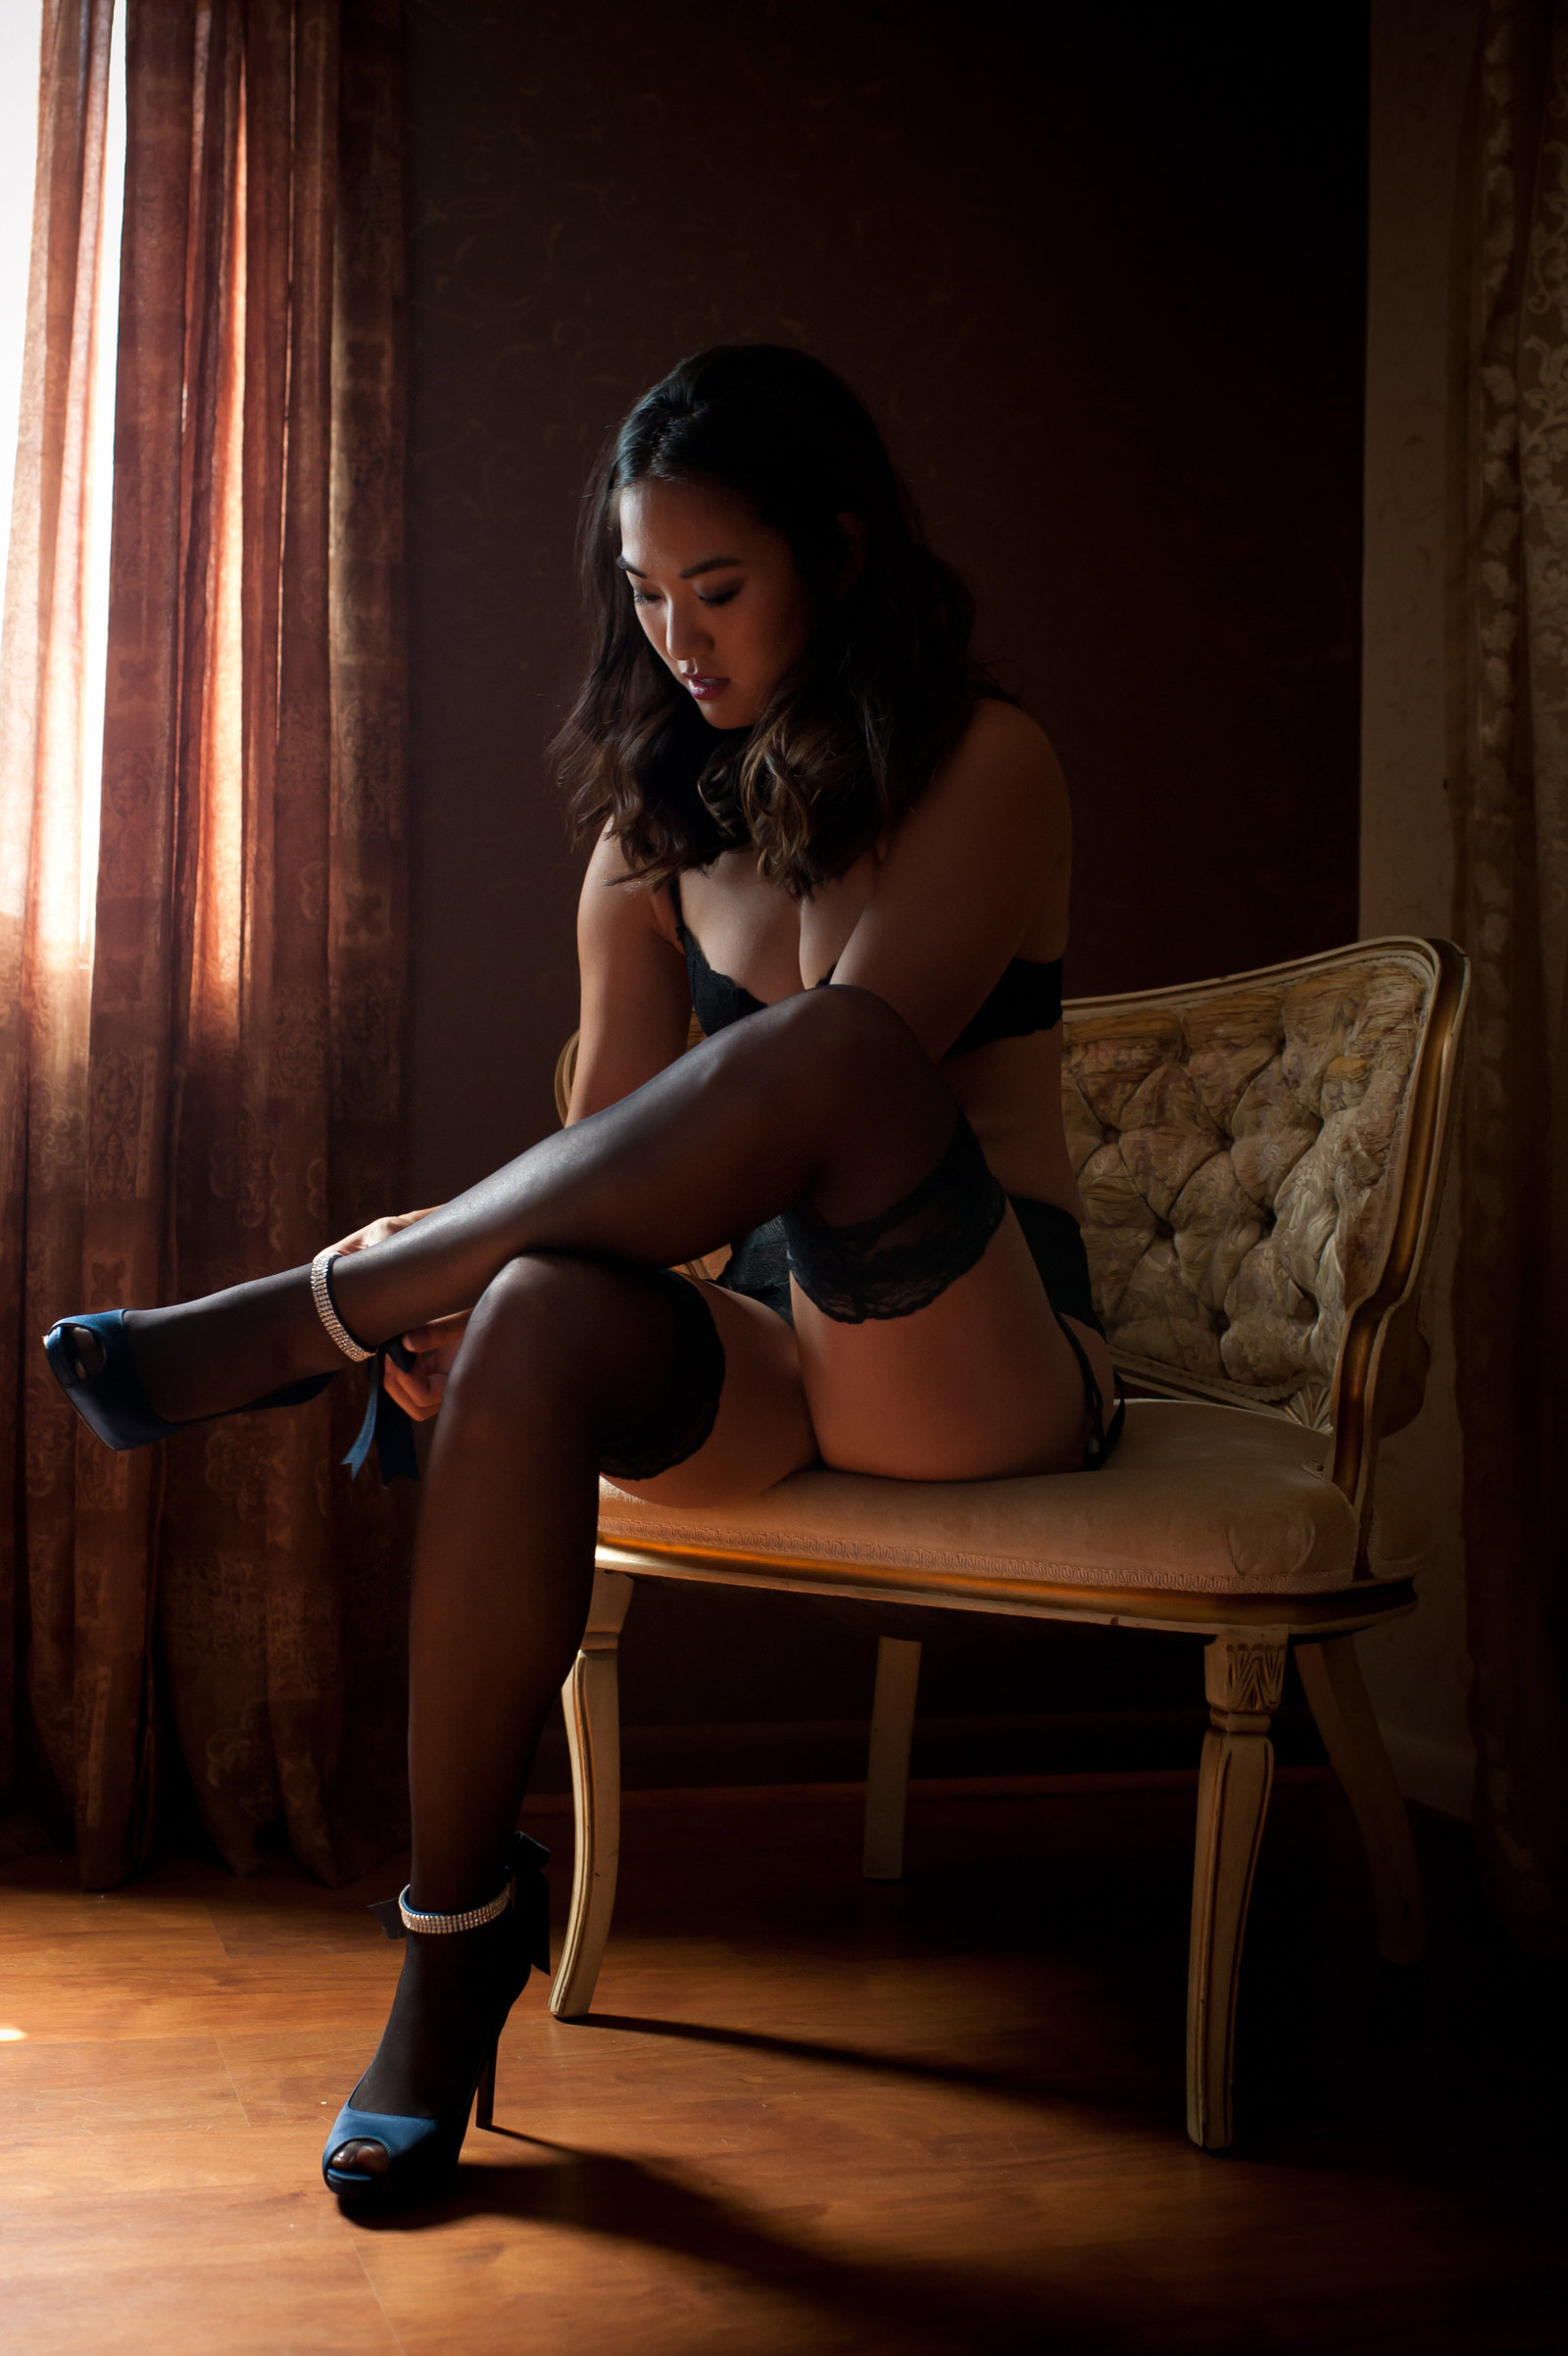 minneapolis-boudoir-photography-561